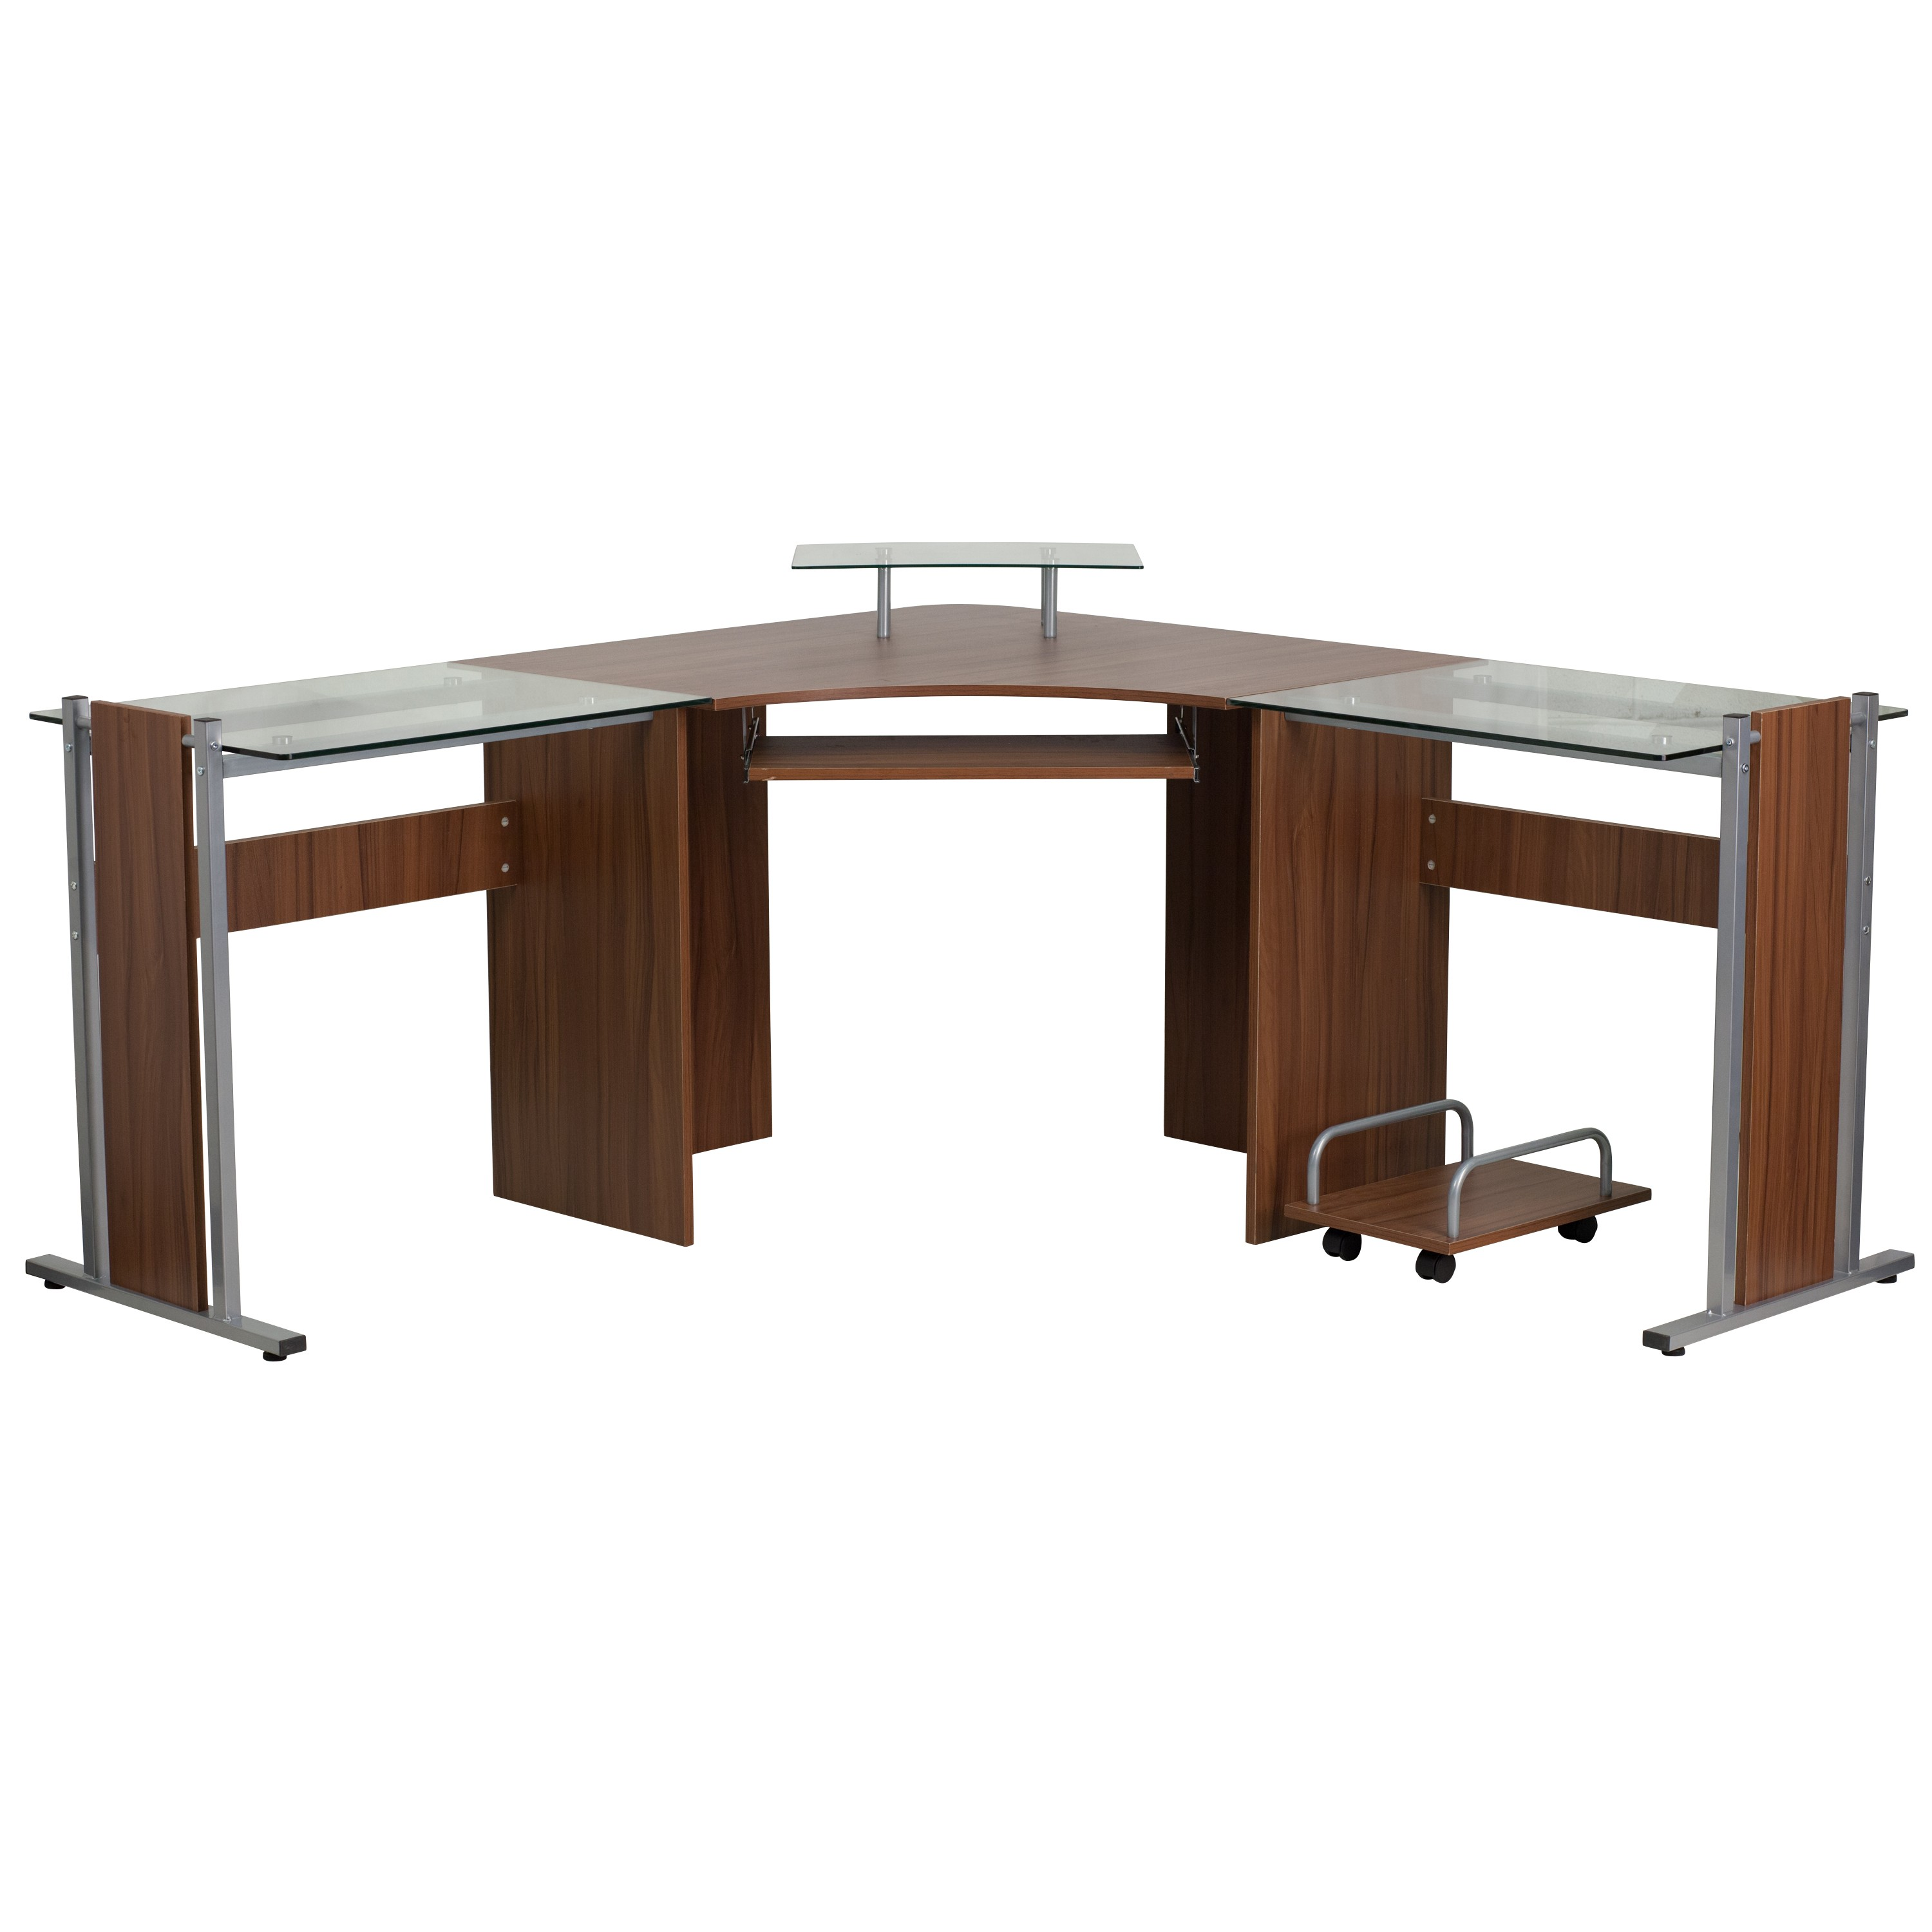 Desk With Pull Out Table Mfo Teakwood Laminate Corner Desk With Pullout Keyboard Tray And